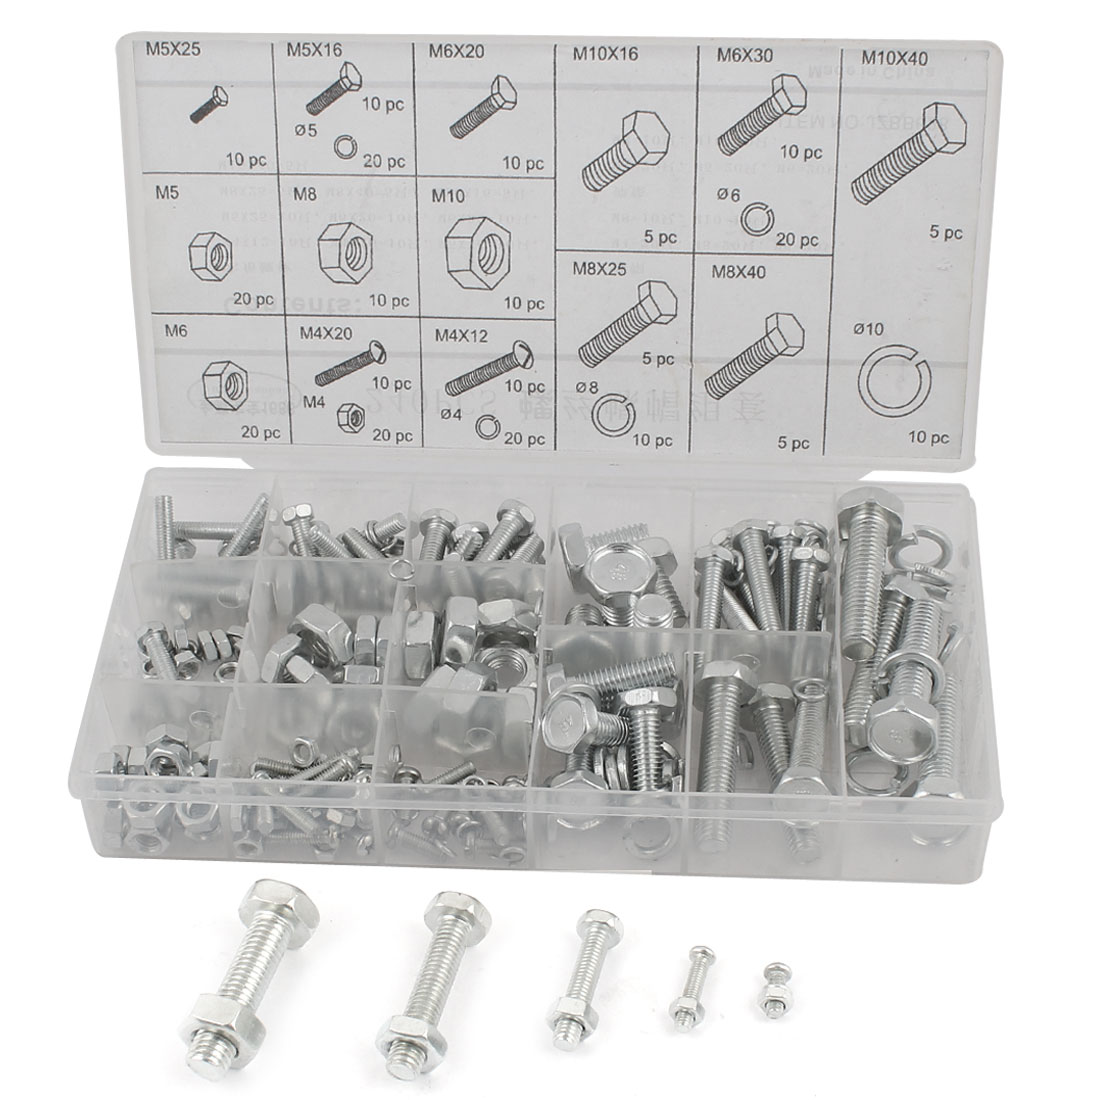 Uxcell Hexagon Nuts Spring Washers Hex Head Screw Bolts Assortment Kit (240-pack)